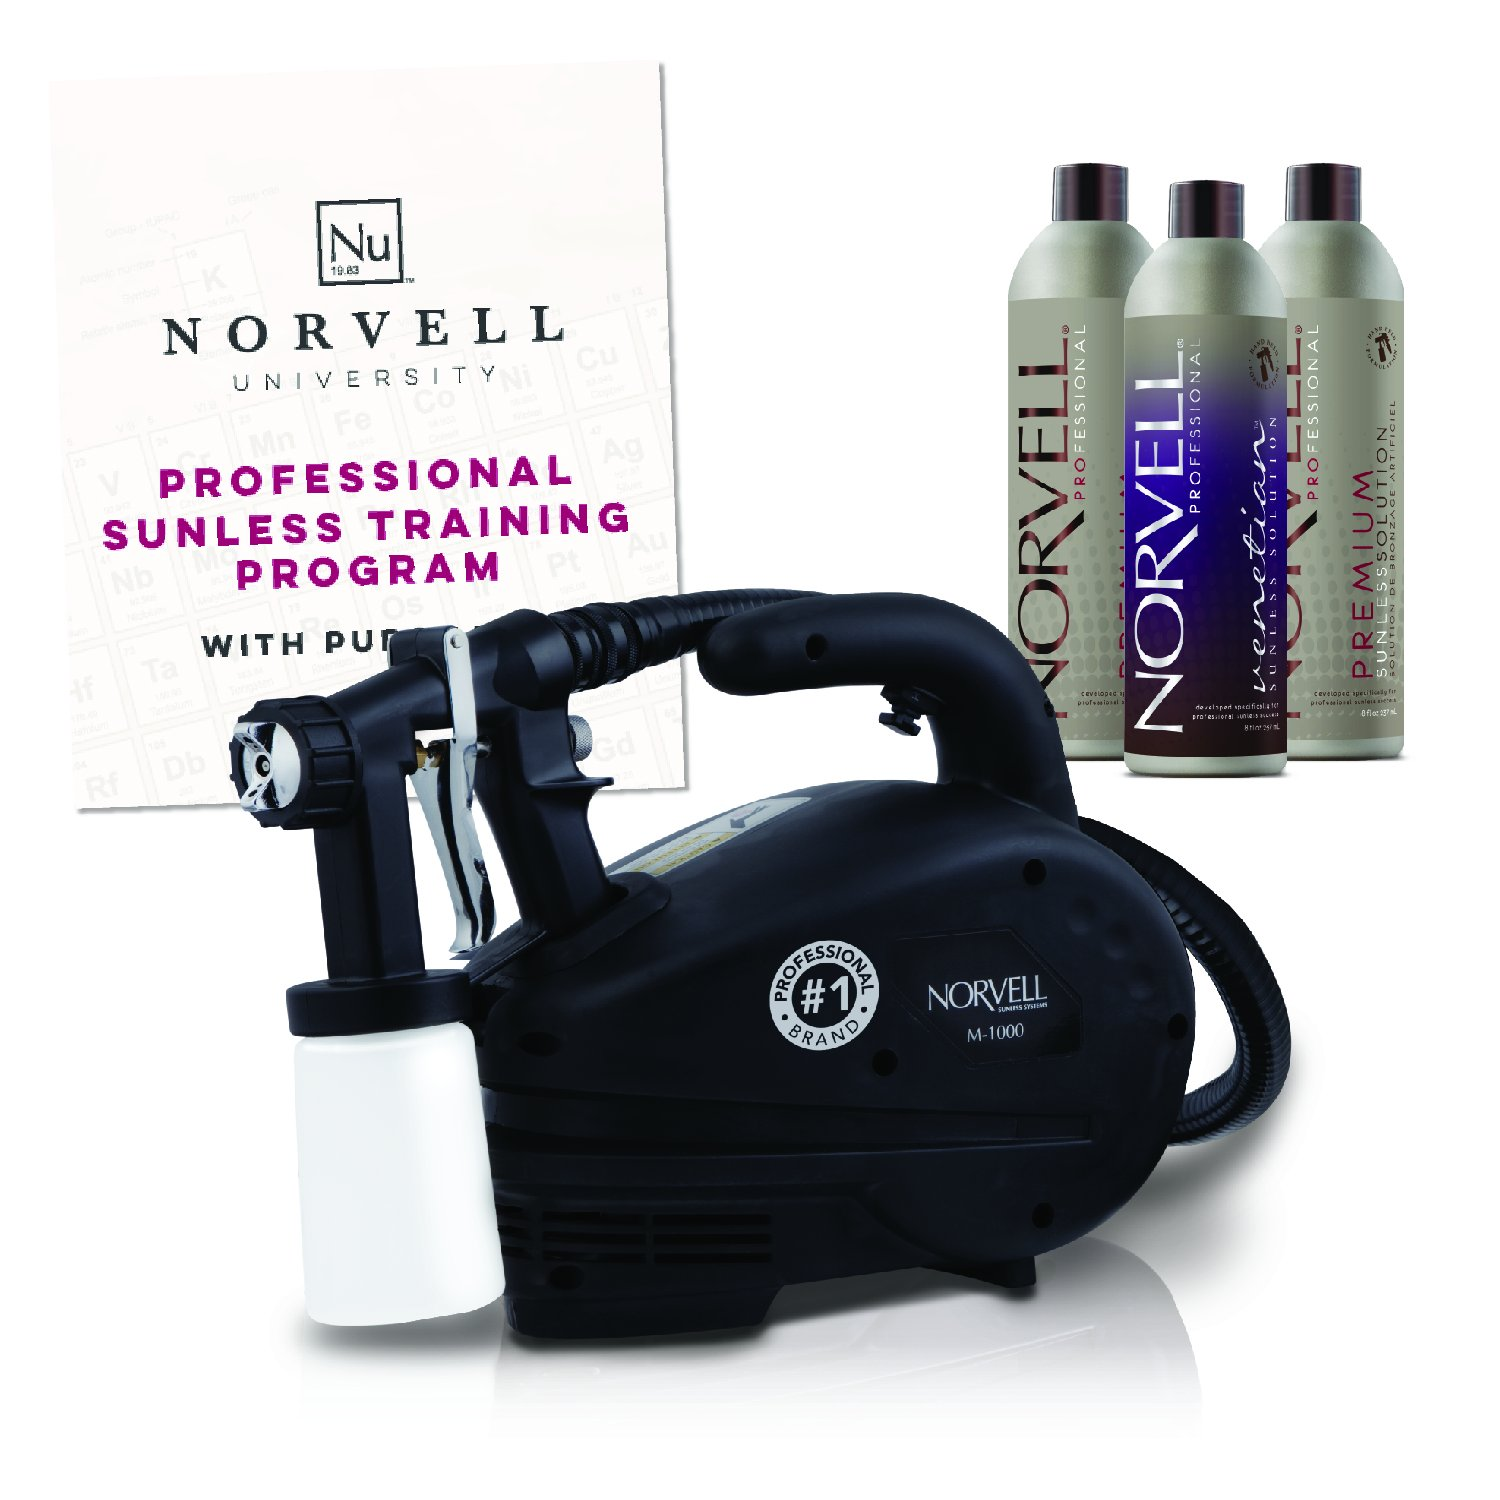 Norvell Sunless Kit - M1000 Mobile HVLP Spray Tan Airbrush Machine + 8 oz Tanning Solutions in Clear Plus, Venetian and Dark + Norvell Training Program (Retail Value $490) by Norvell (Image #1)